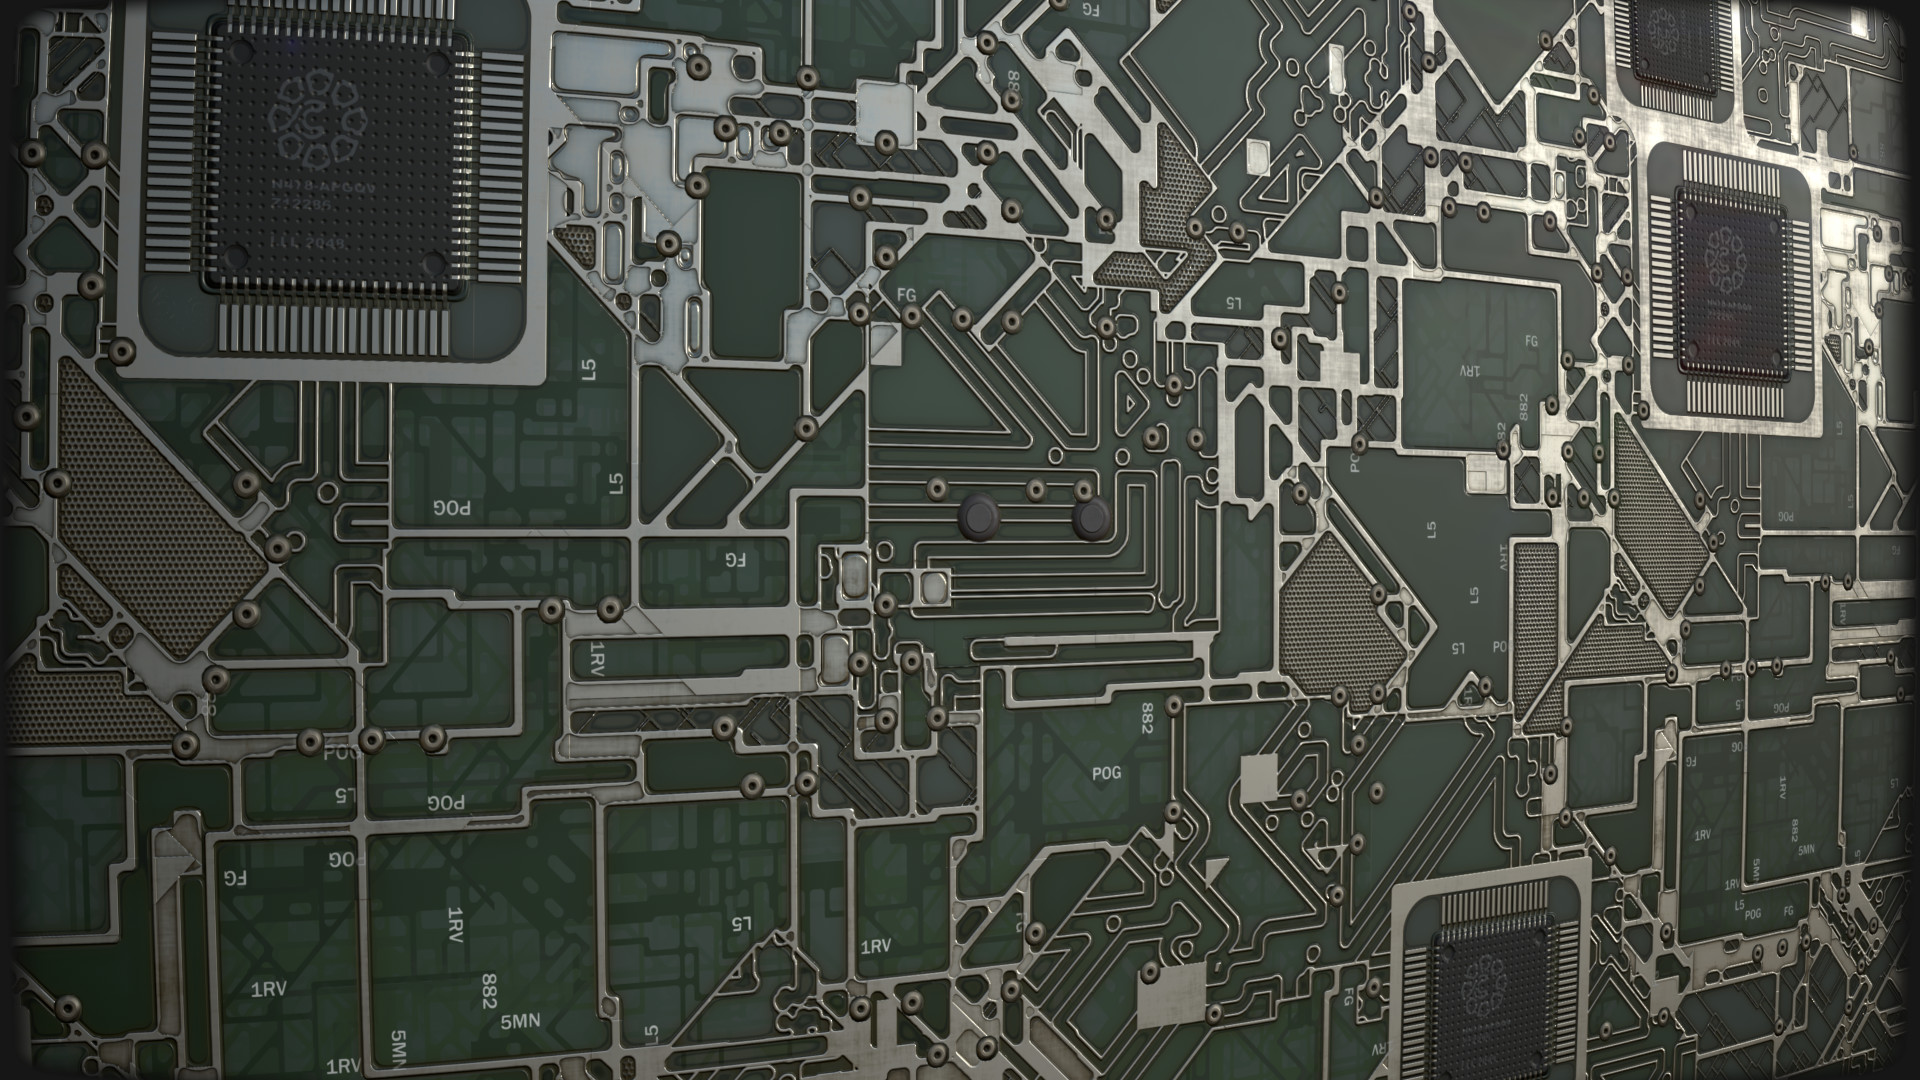 Artstation Circuit Board Substance Matthias Schmidt The Somebody Asked How I Made Lines Its Basicly Just Edge Detect From A Tile Sampler Input With Bit Of Tweaking And Blending